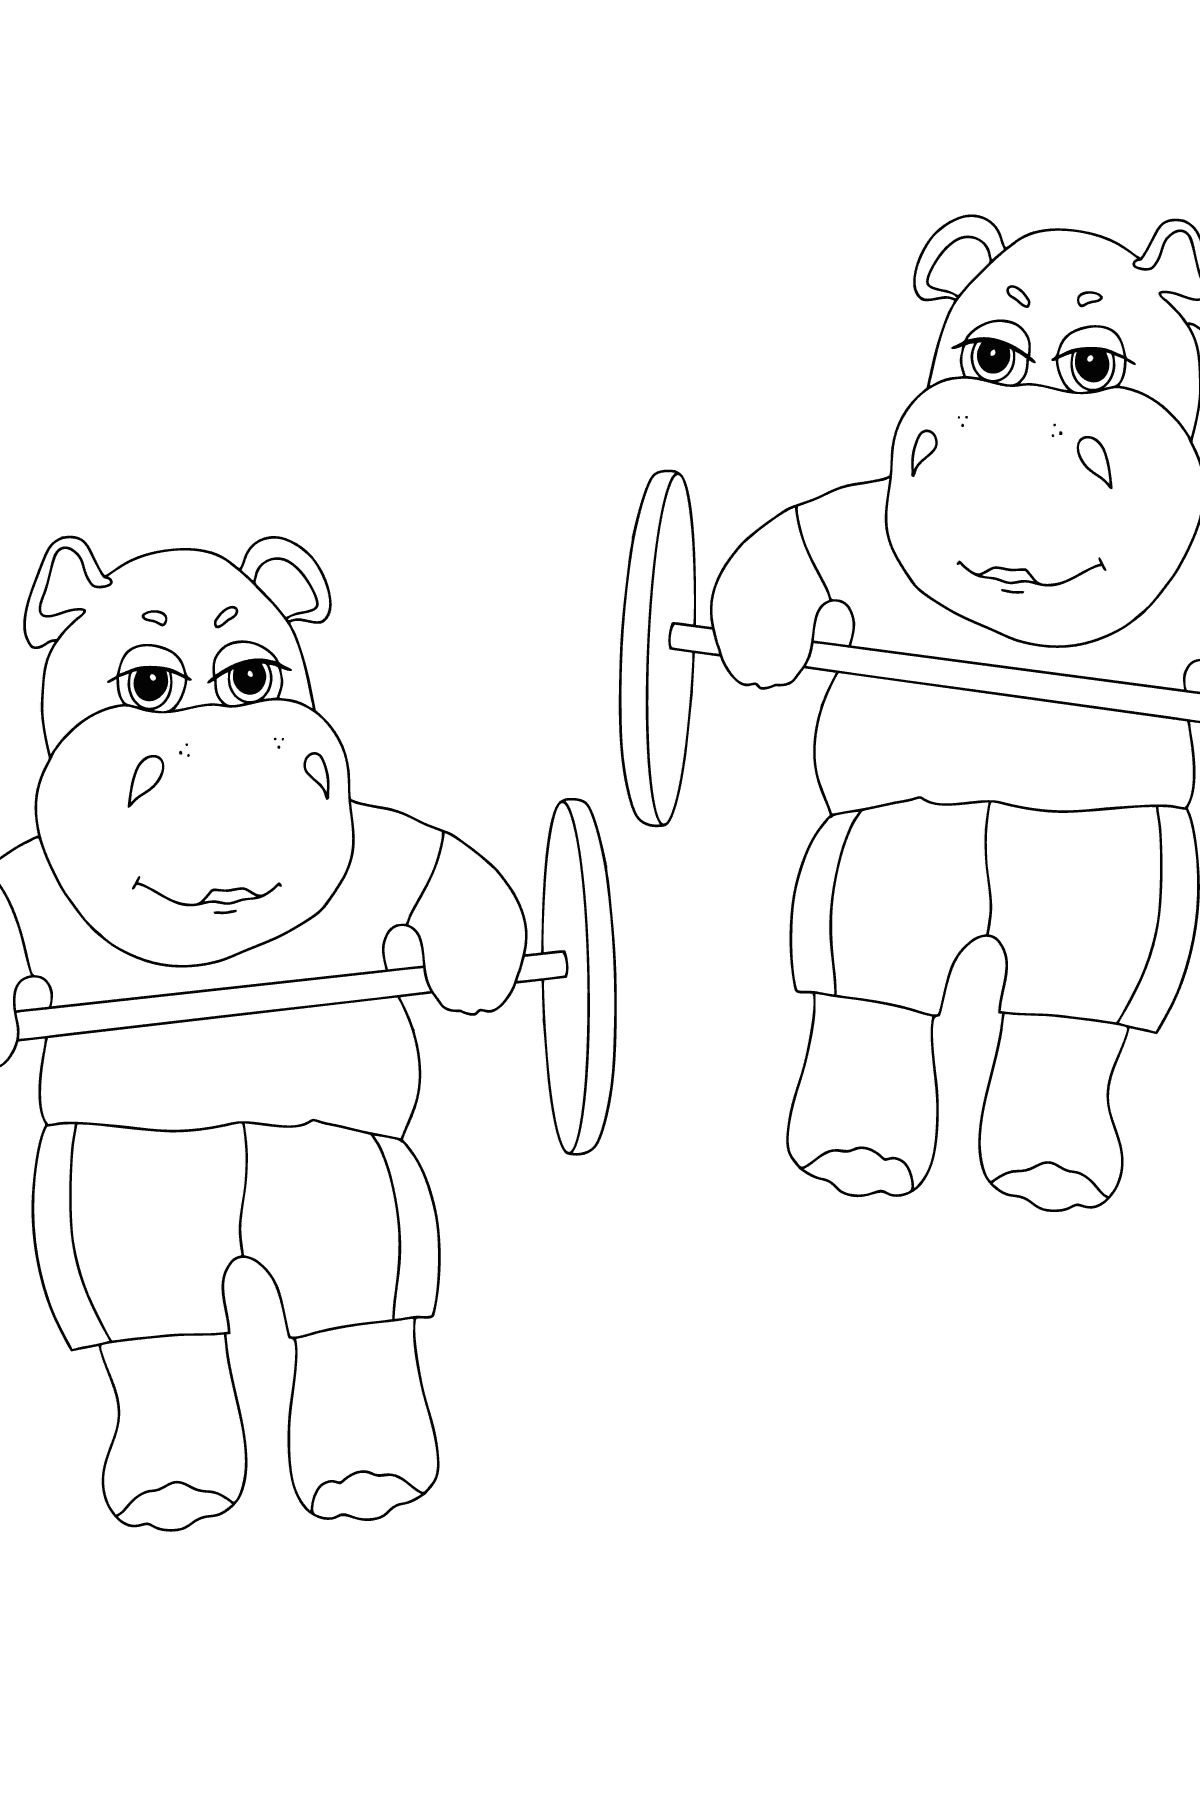 Coloring Page - Hippos are Exercising with a Barbell for Children